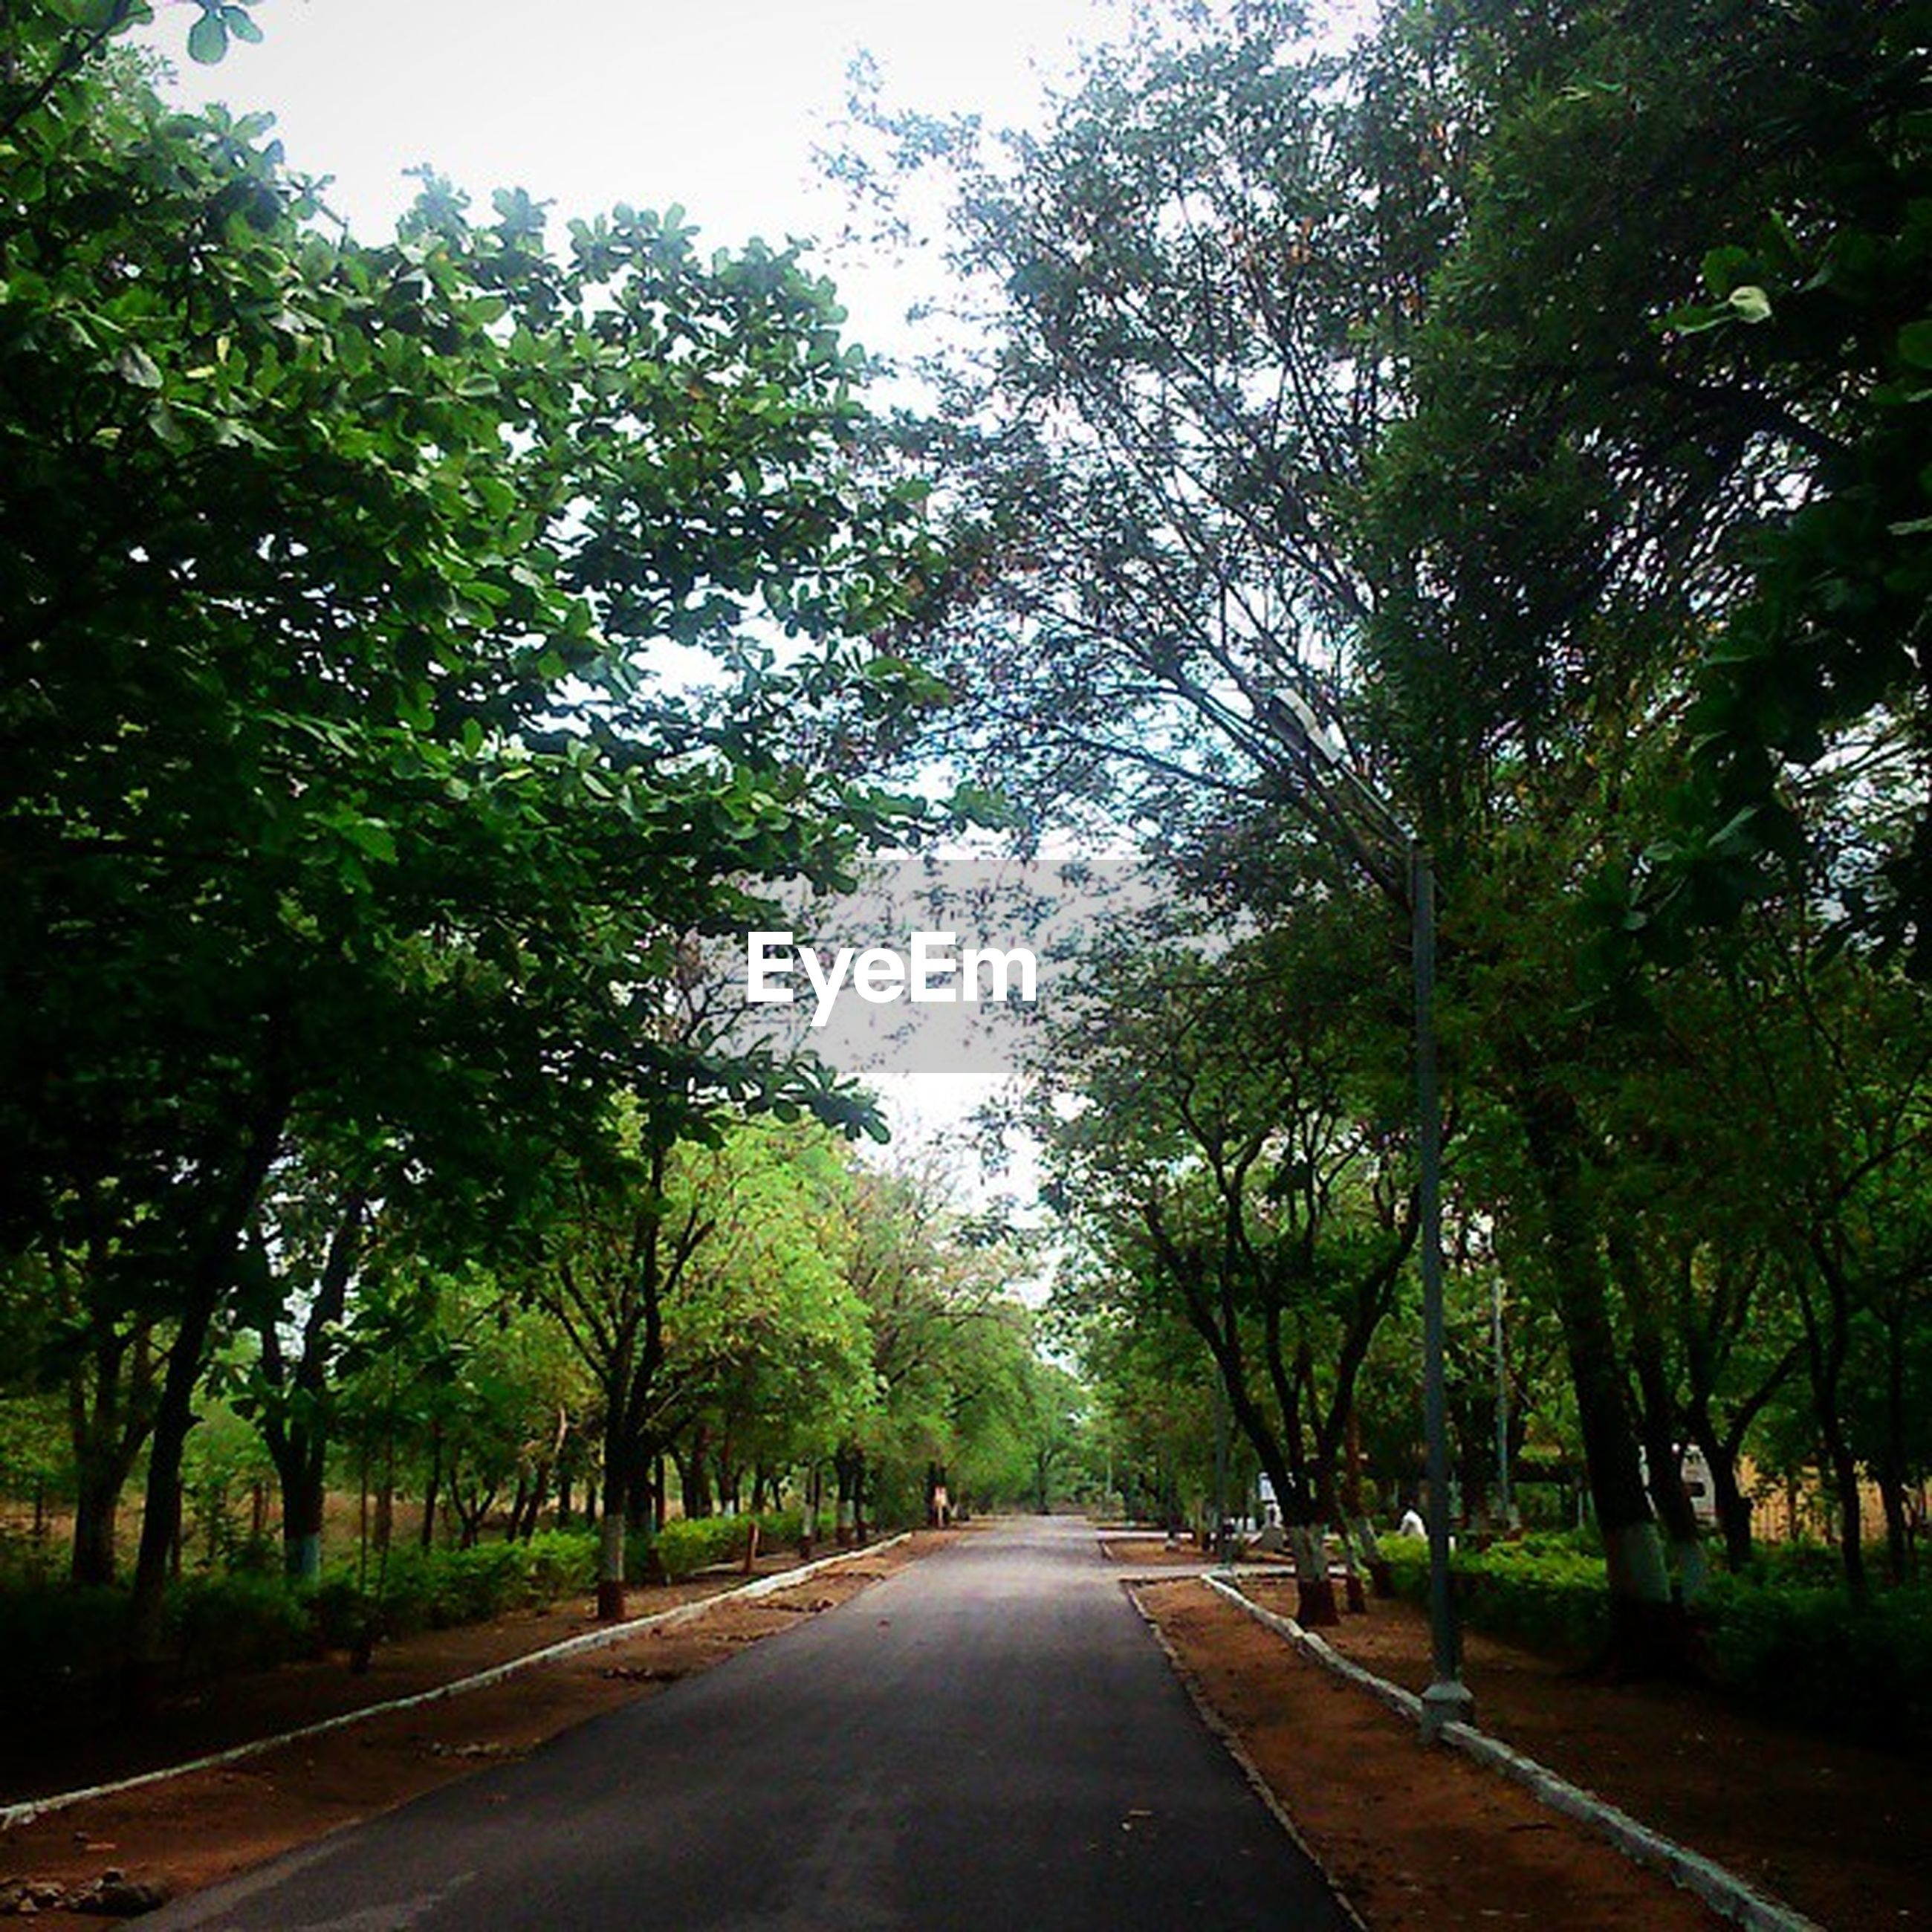 the way forward, tree, road, transportation, diminishing perspective, vanishing point, road marking, empty road, growth, tranquility, street, treelined, country road, nature, empty, green color, asphalt, long, tranquil scene, day